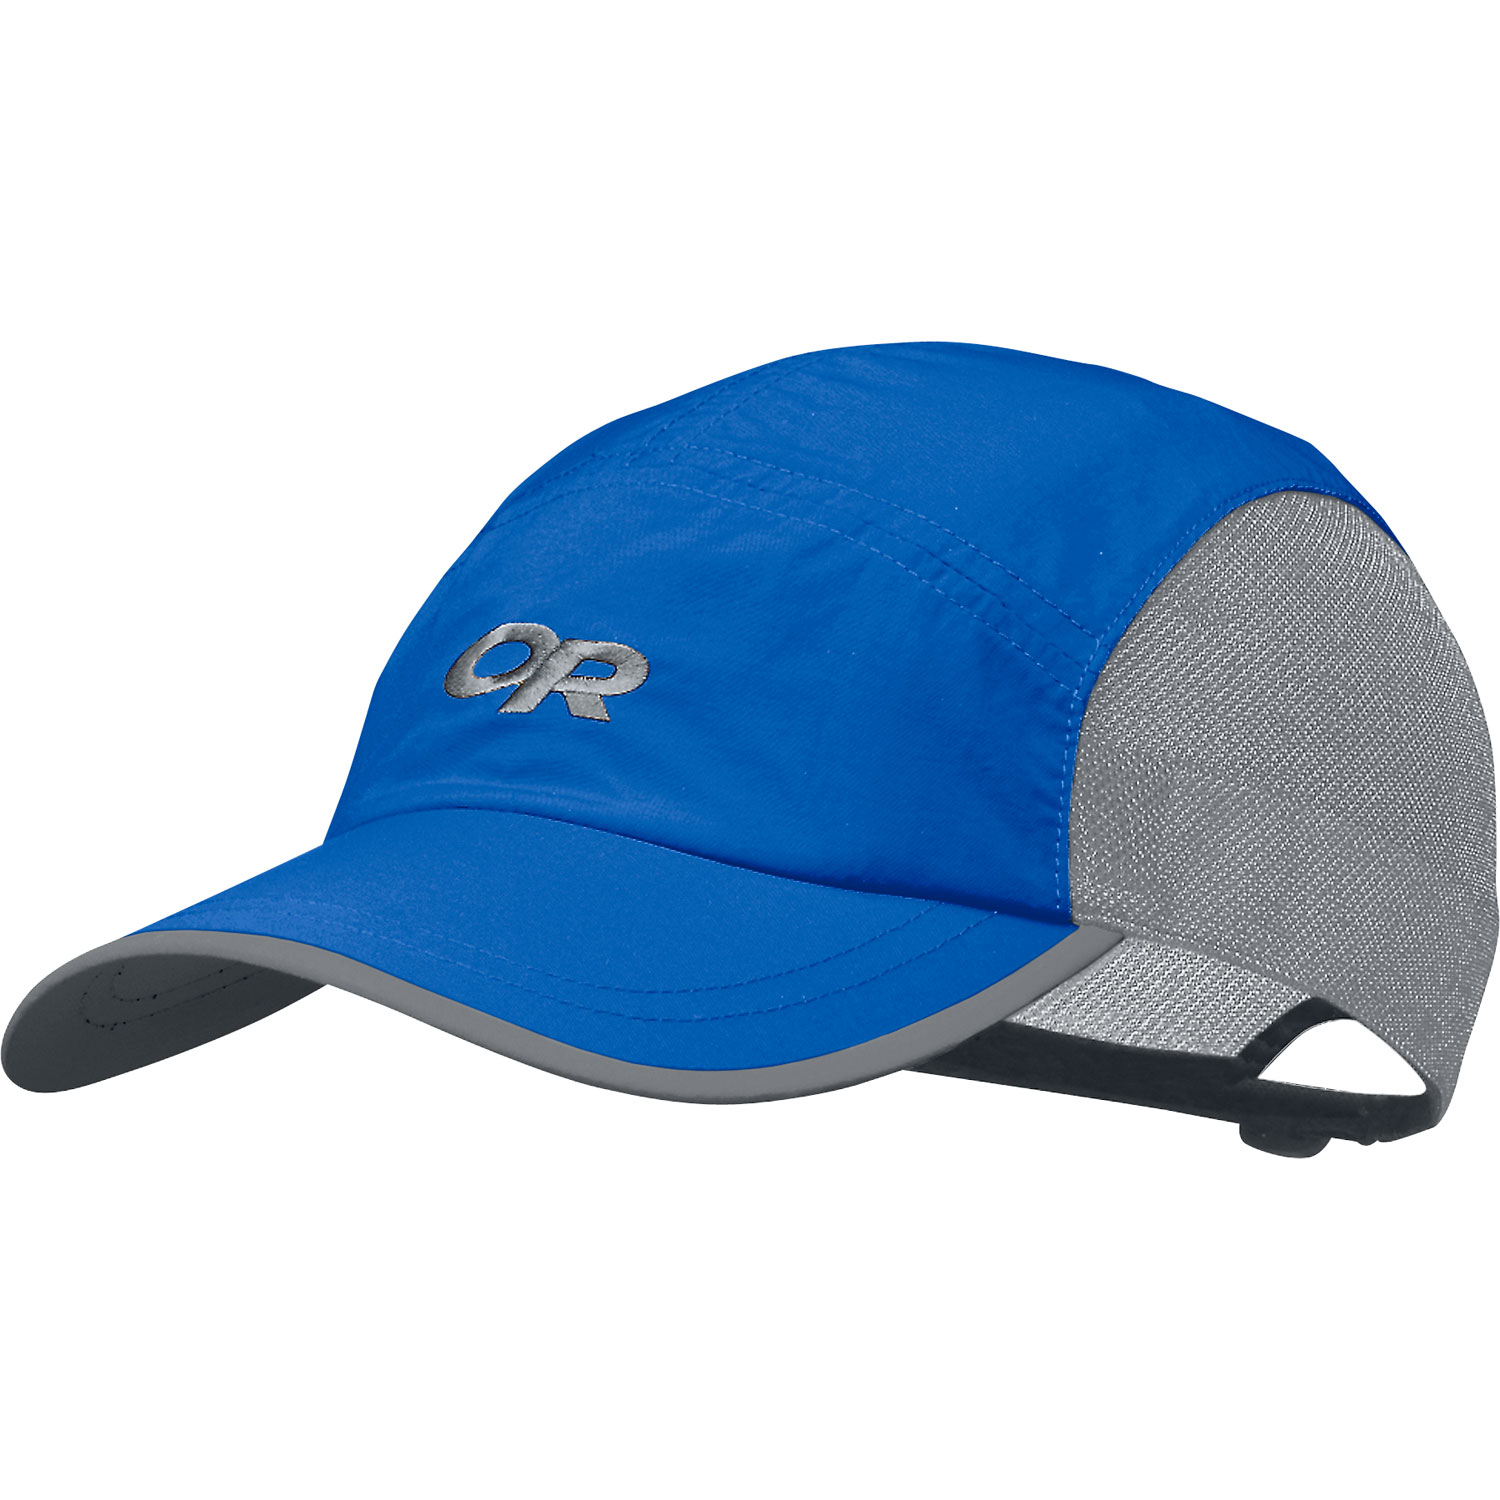 Key Features of the Outdoor Research Swift Hat: Quick-dry, nylon Supplex fabric front and top panels Mesh liner crown aids ventilation Shaped, plastic-stiffened bill TransAction headband Quick-release buckle adjustment - $14.95